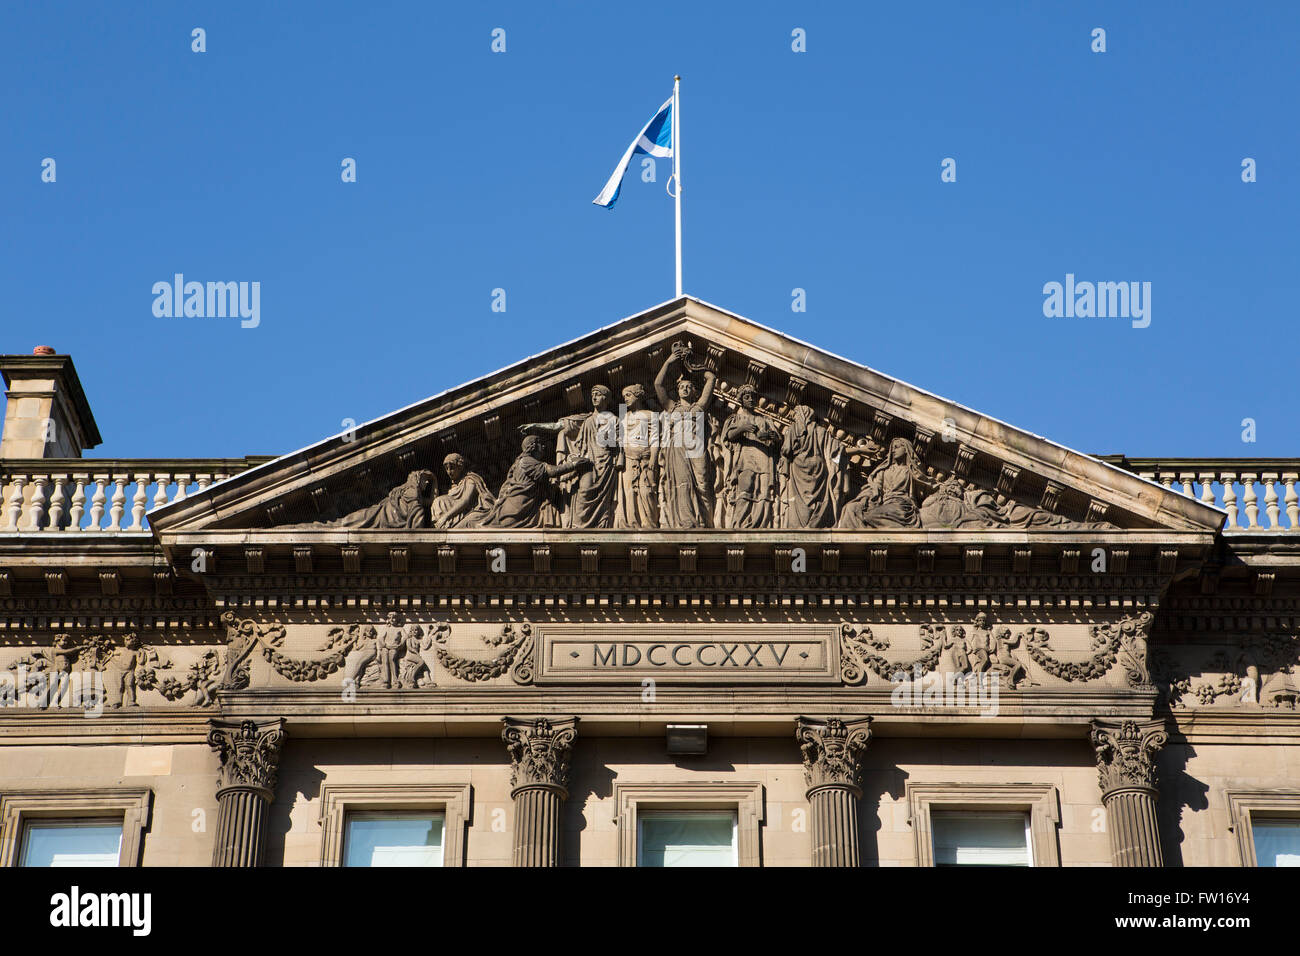 The pediment of the Standard Life Investments building on George Street in Edinburgh, Scotland. - Stock Image